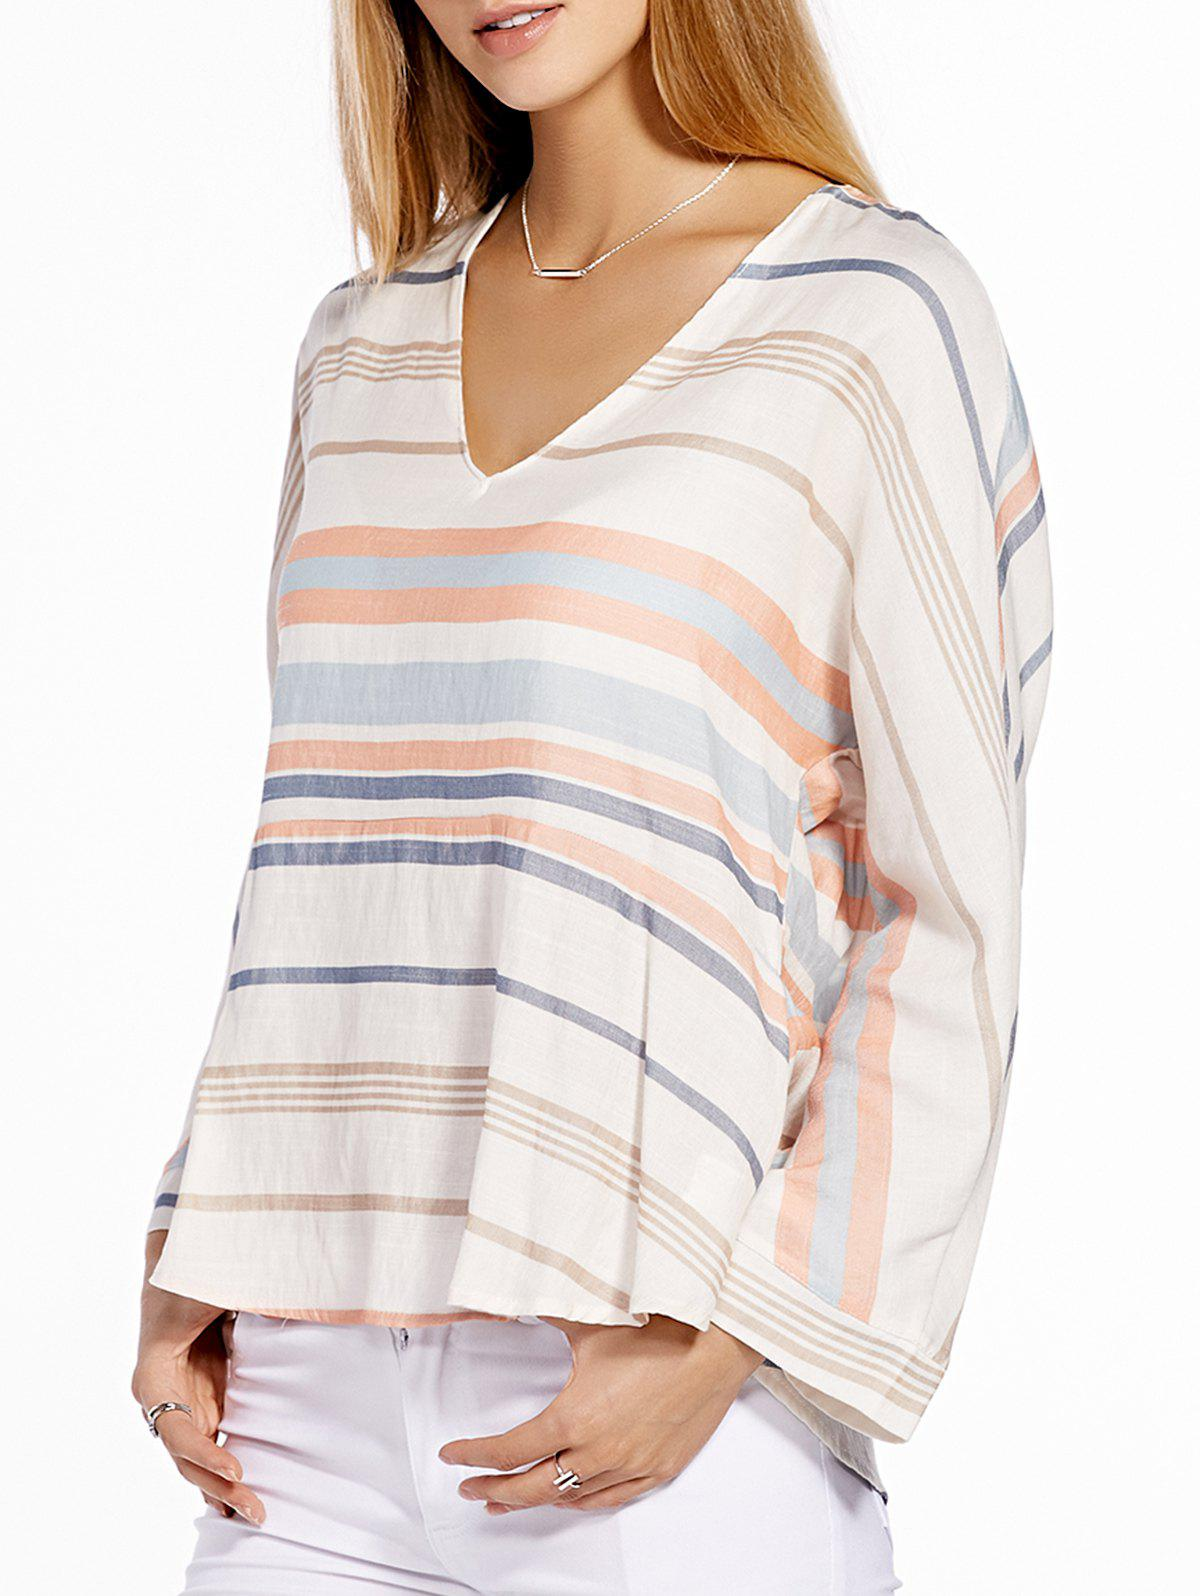 Stylish Women's 3/4 Sleeve V-Neck Striped Blouse - OFF WHITE L